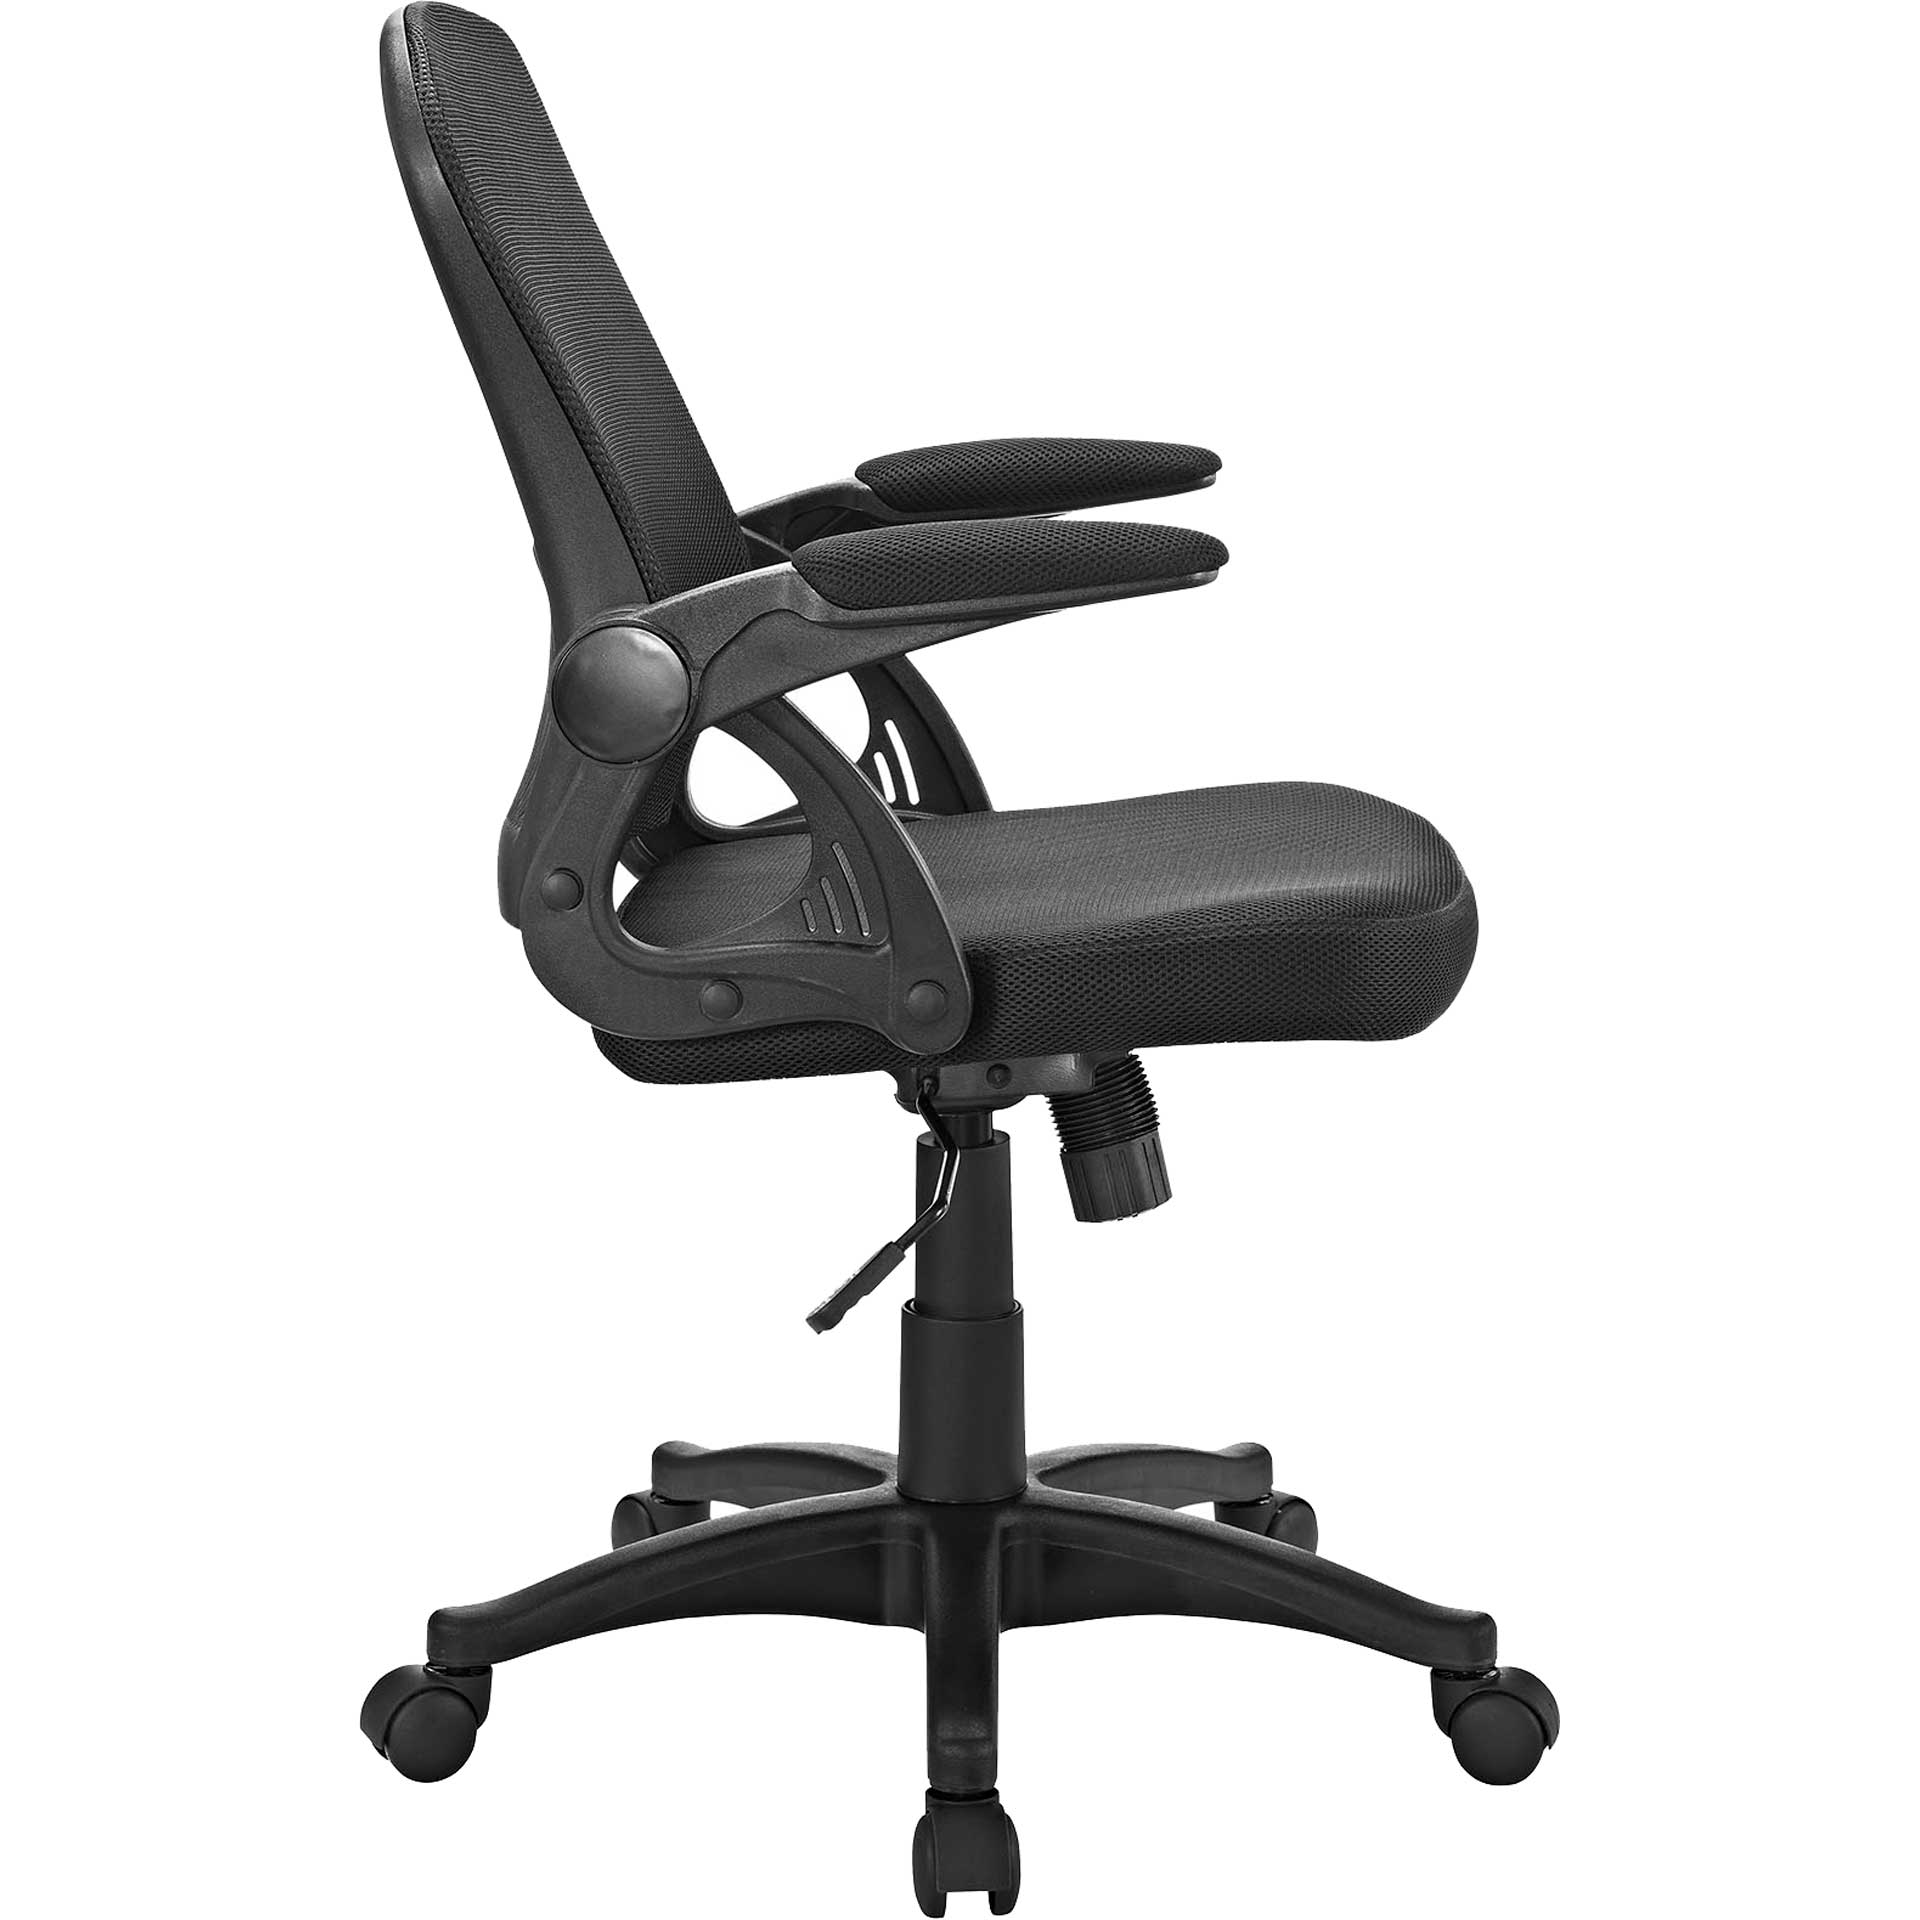 Adena Office Chair Black